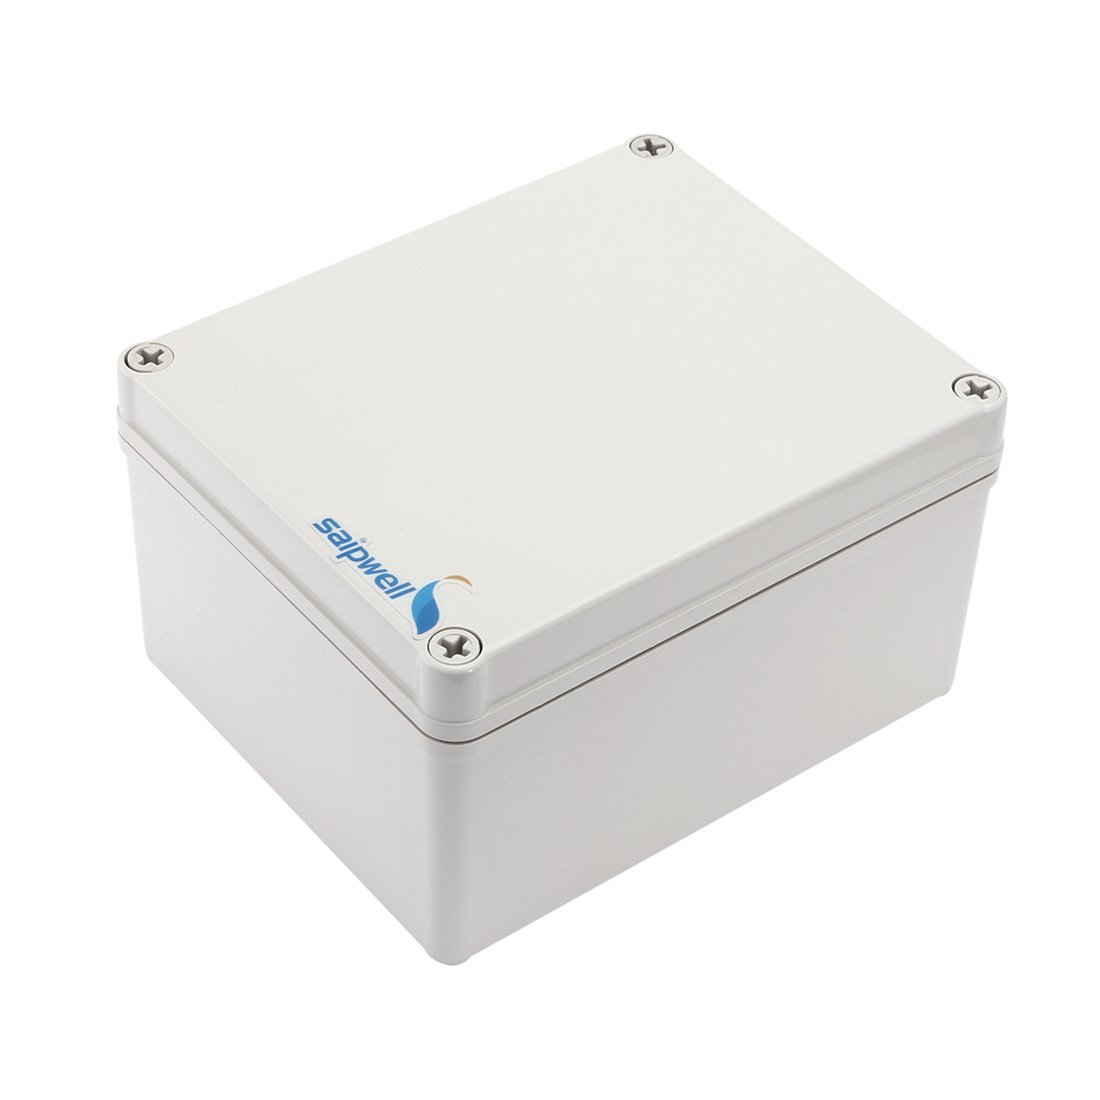 "uxcell 5.51"" x 6.69"" x 3.74"" (140mm x 170mm x 95mm) Electronic ABS Plastic DIY Junction Box Enclosure Case Gray"